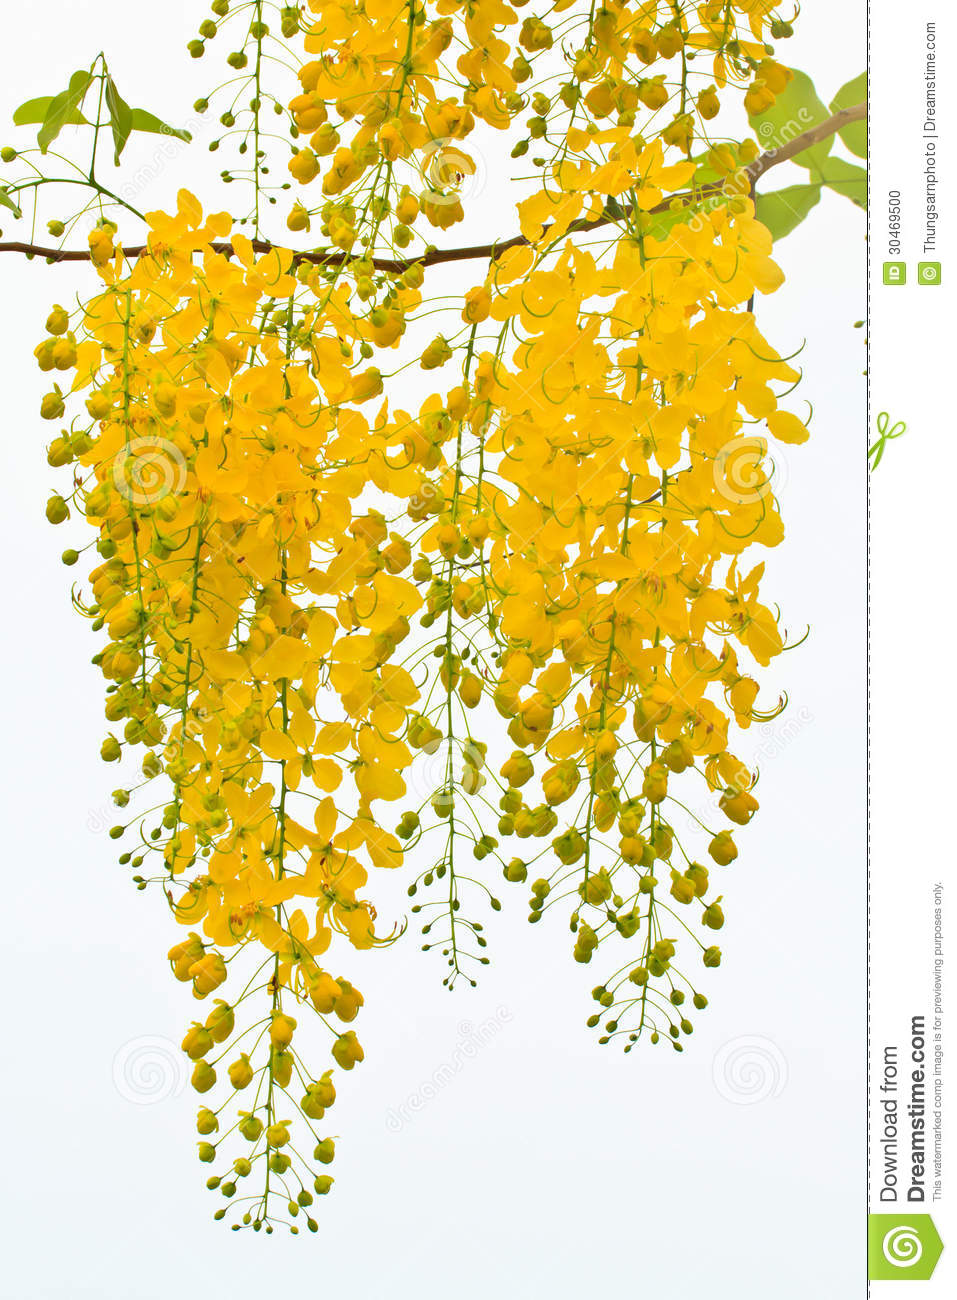 Flower golden shower tree